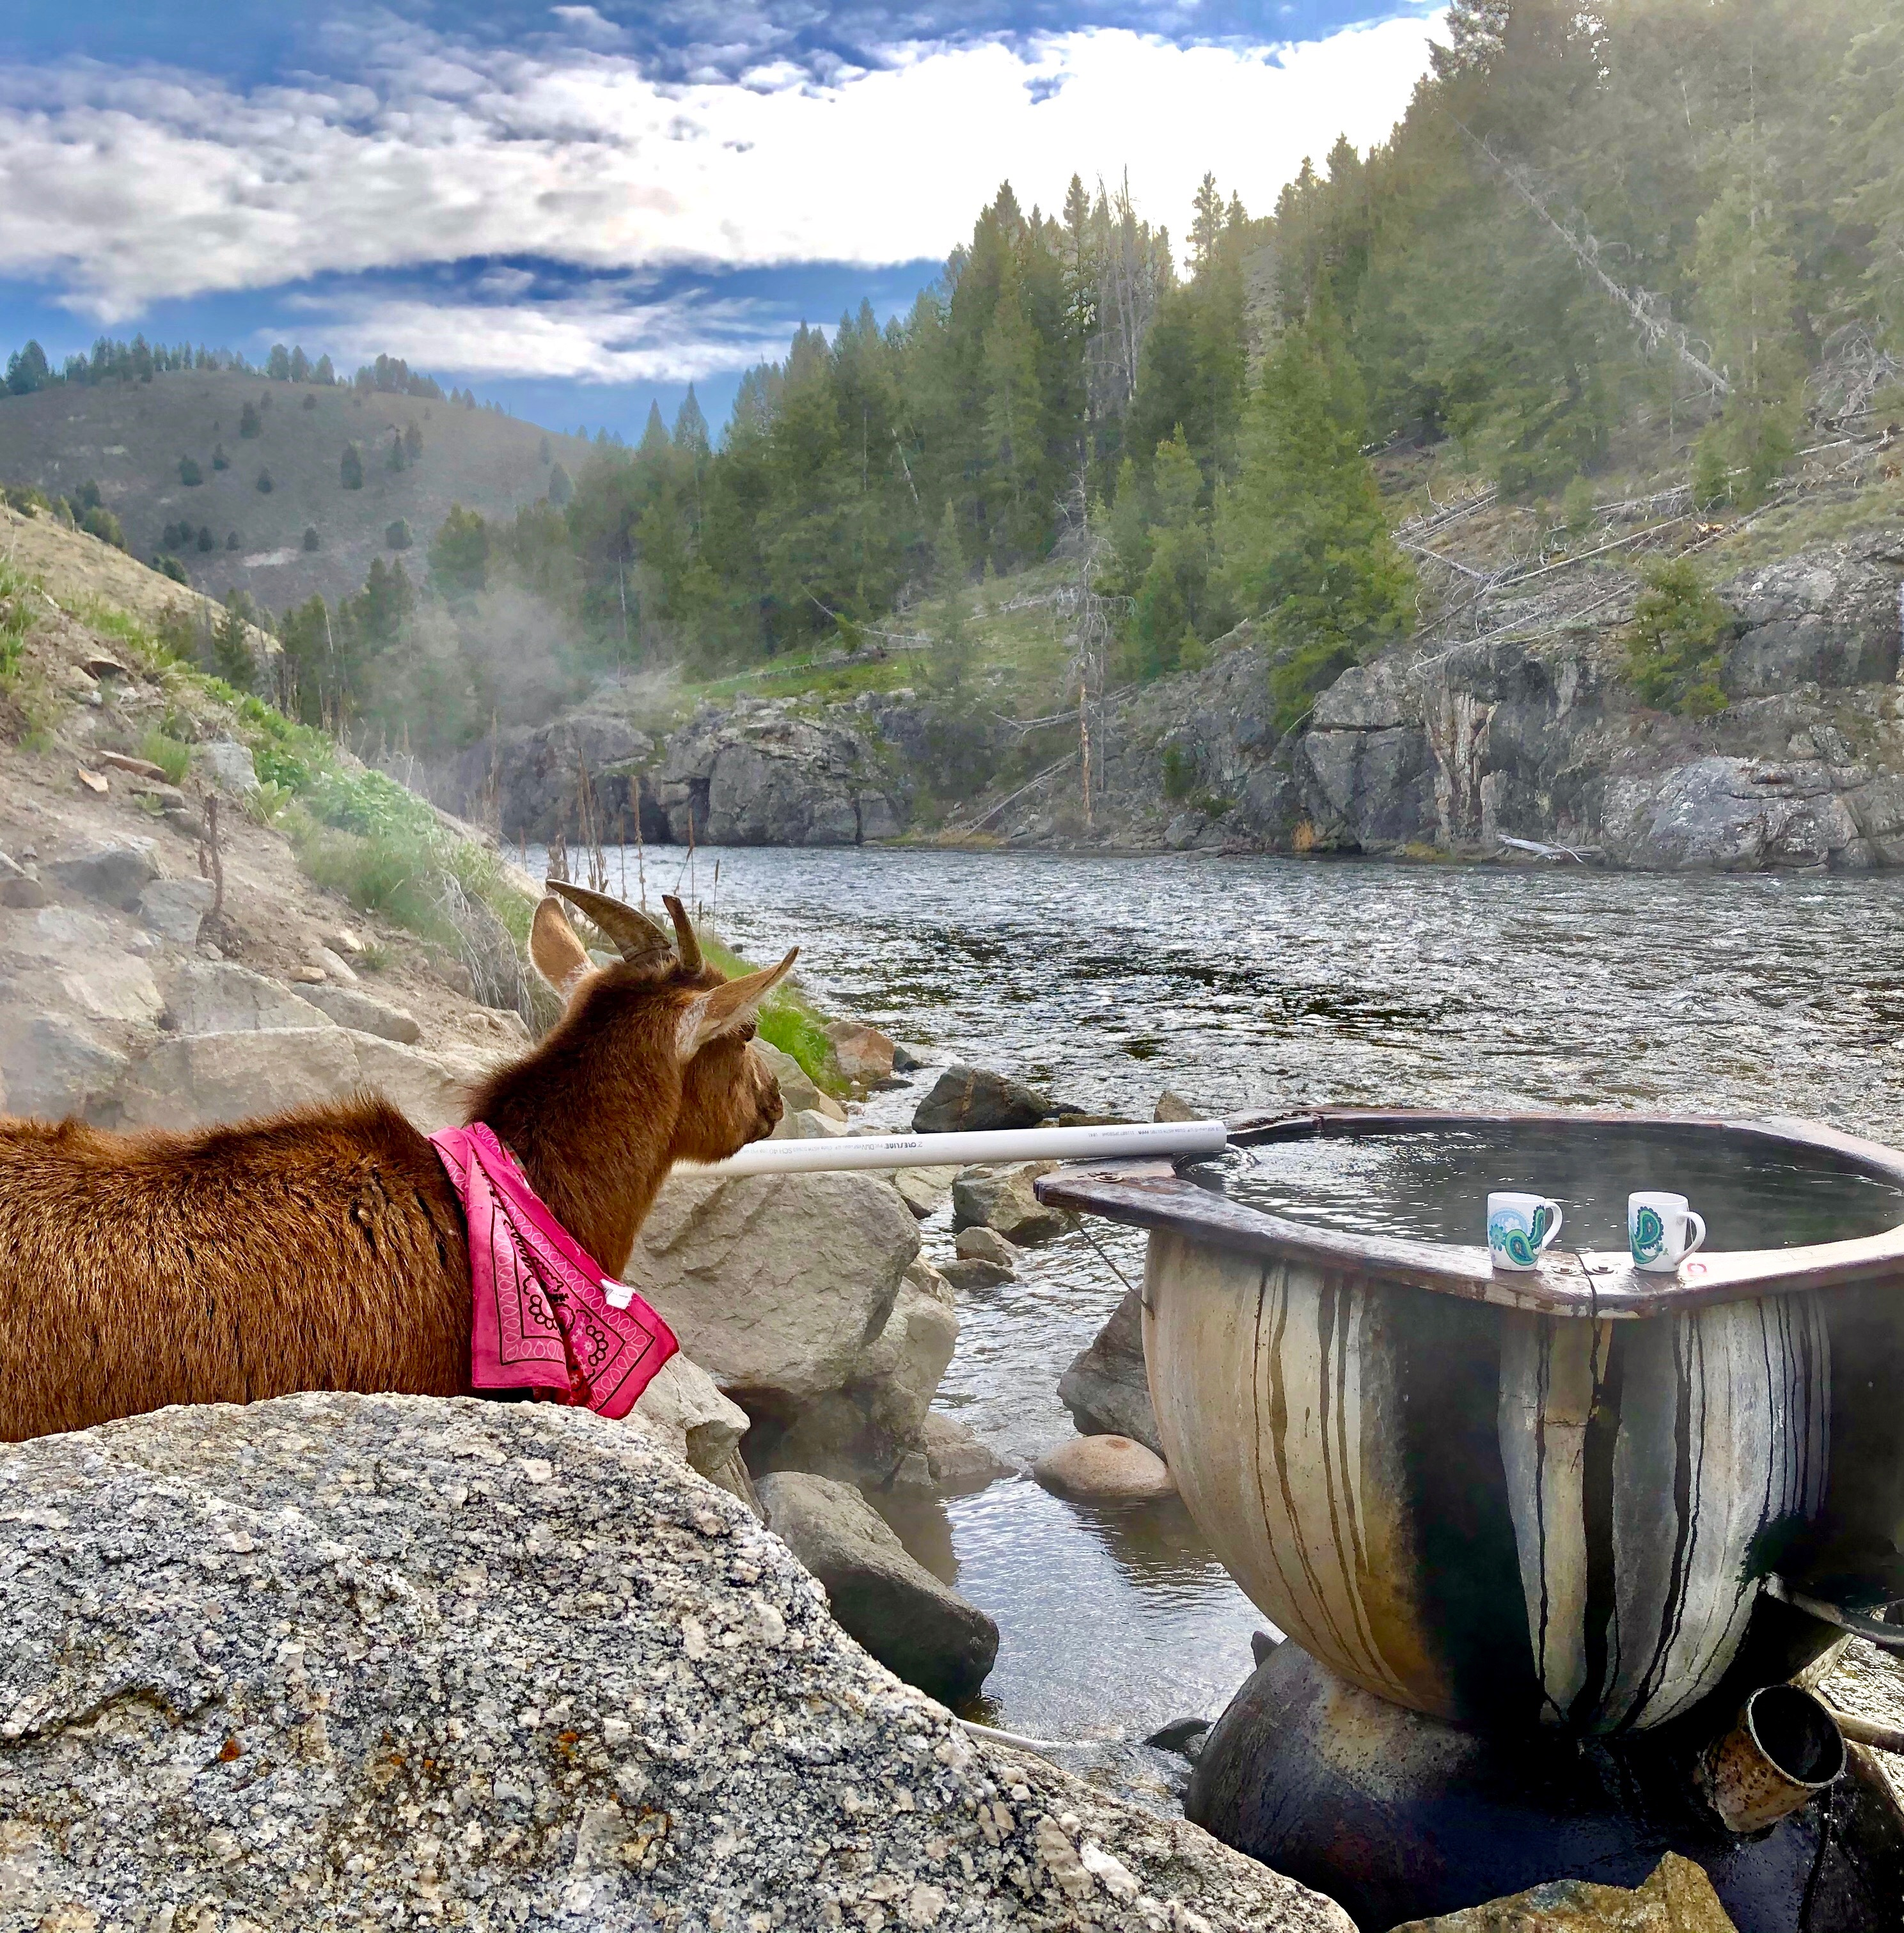 A goat looks at a stream.